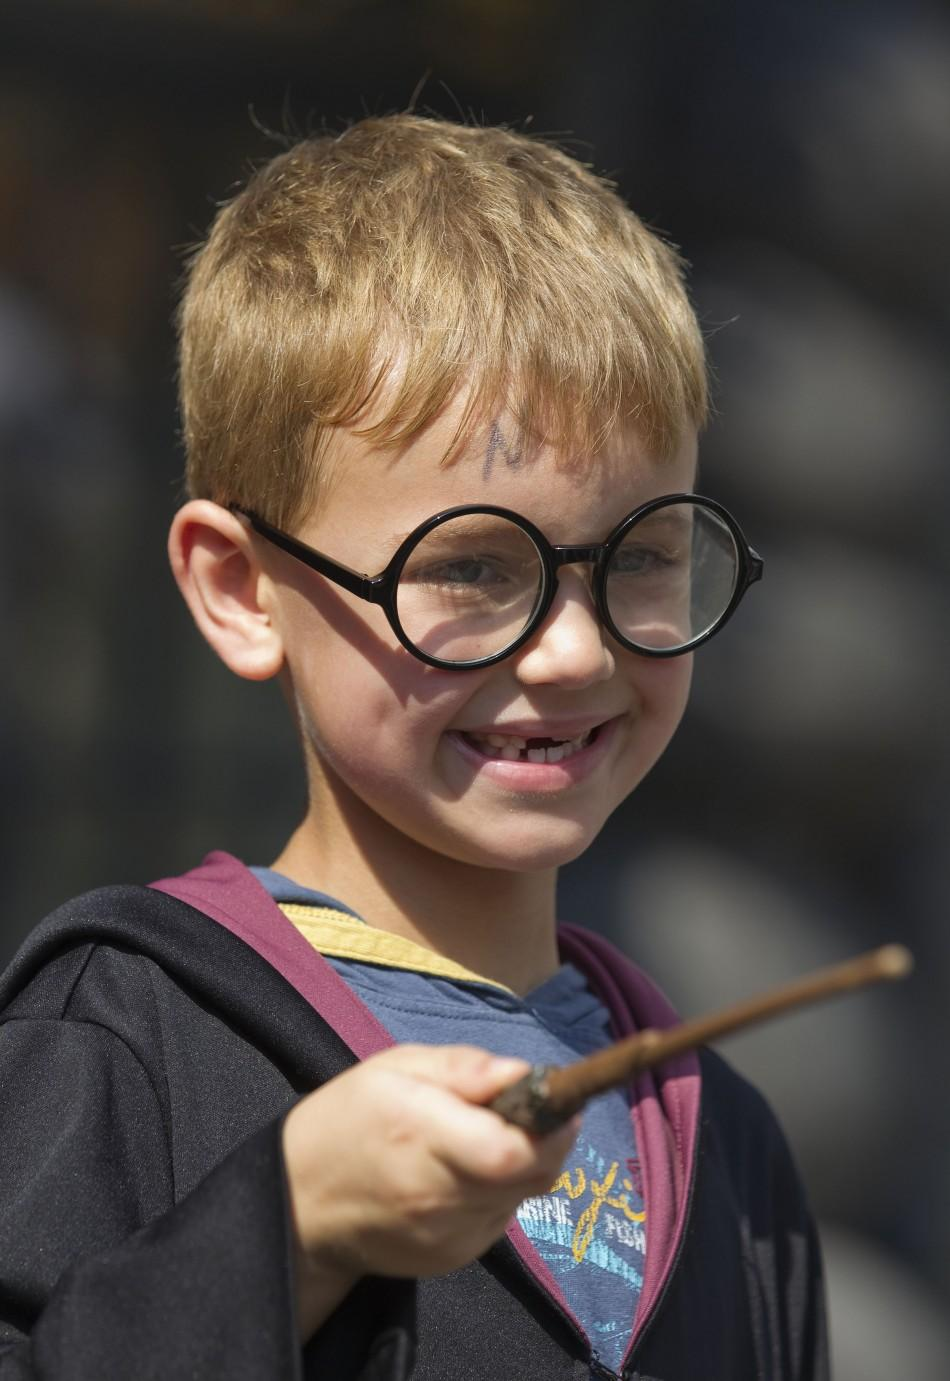 Most spectacular images of Harry Potter fans across the world.